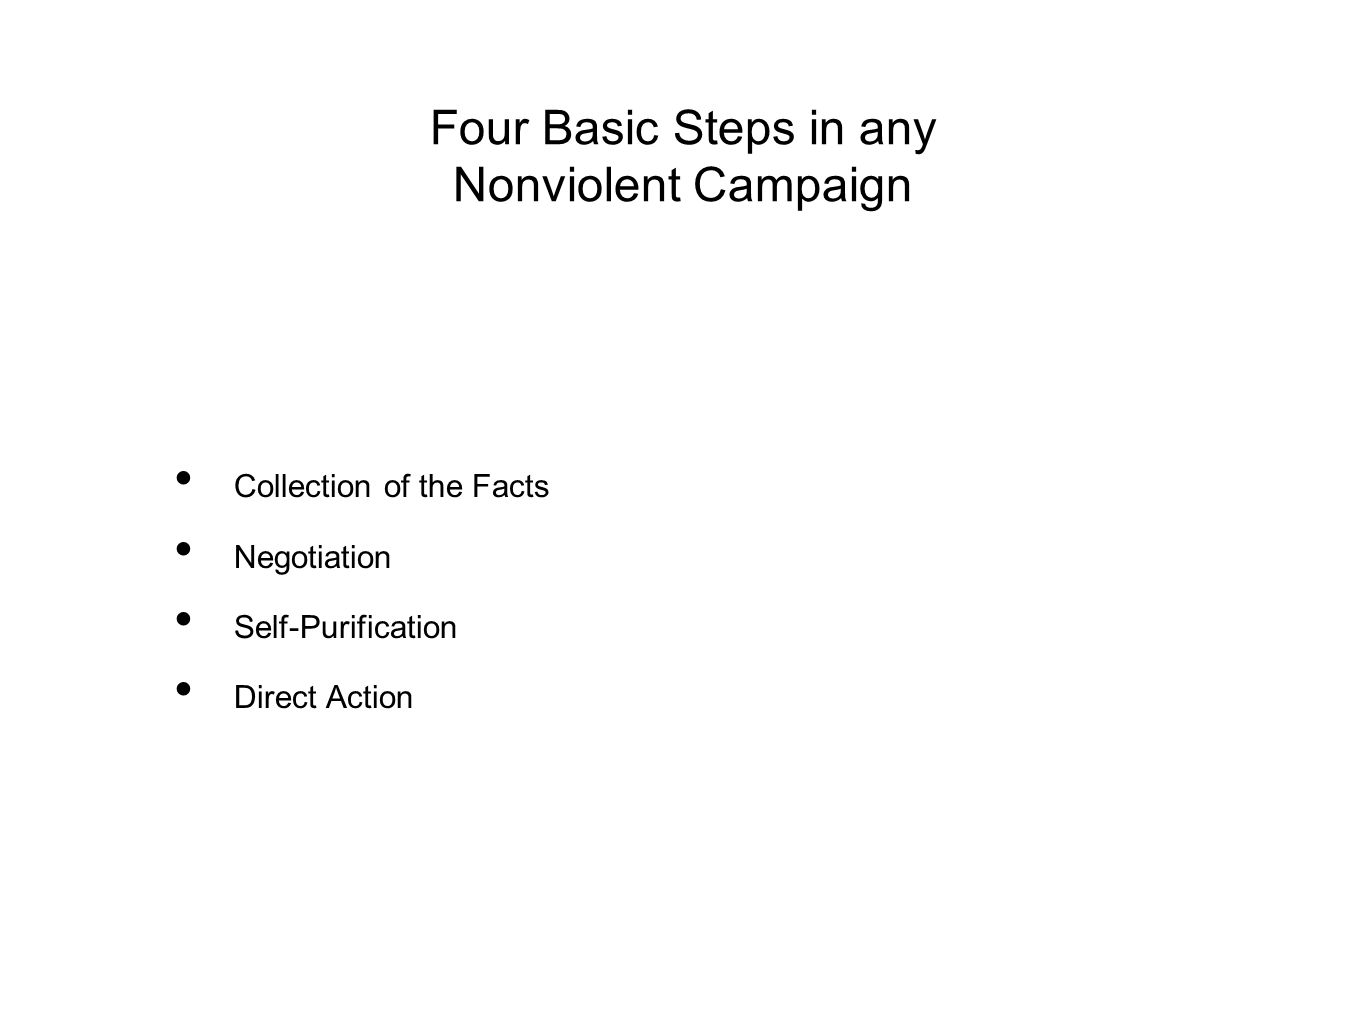 Four Basic Steps in any Nonviolent Campaign